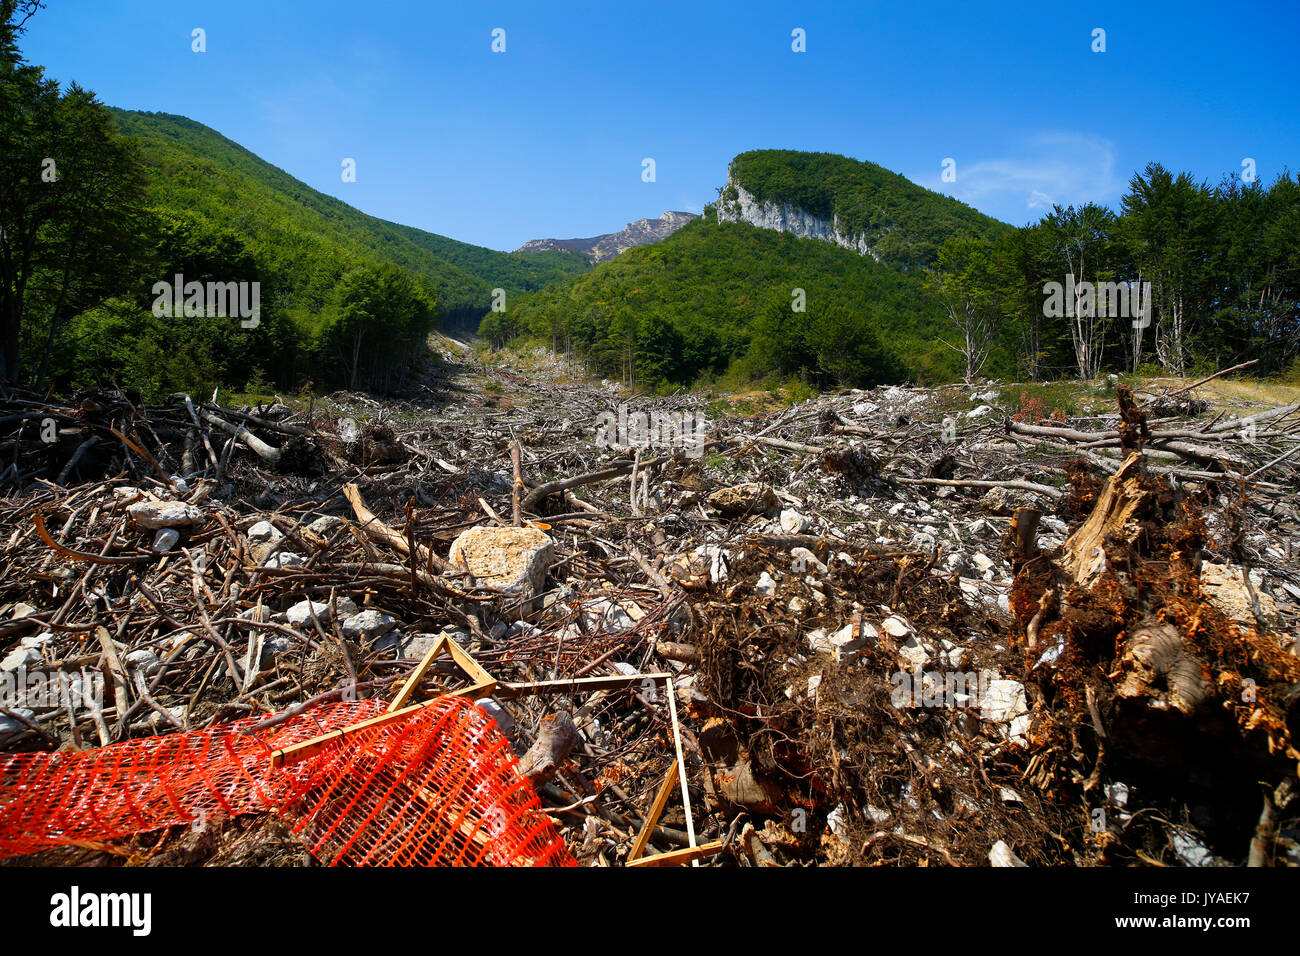 The trail of destruction leading to Hotel Rigopiano near Farindola in Italy, after an avalanche destroyed the hotel - Stock Image